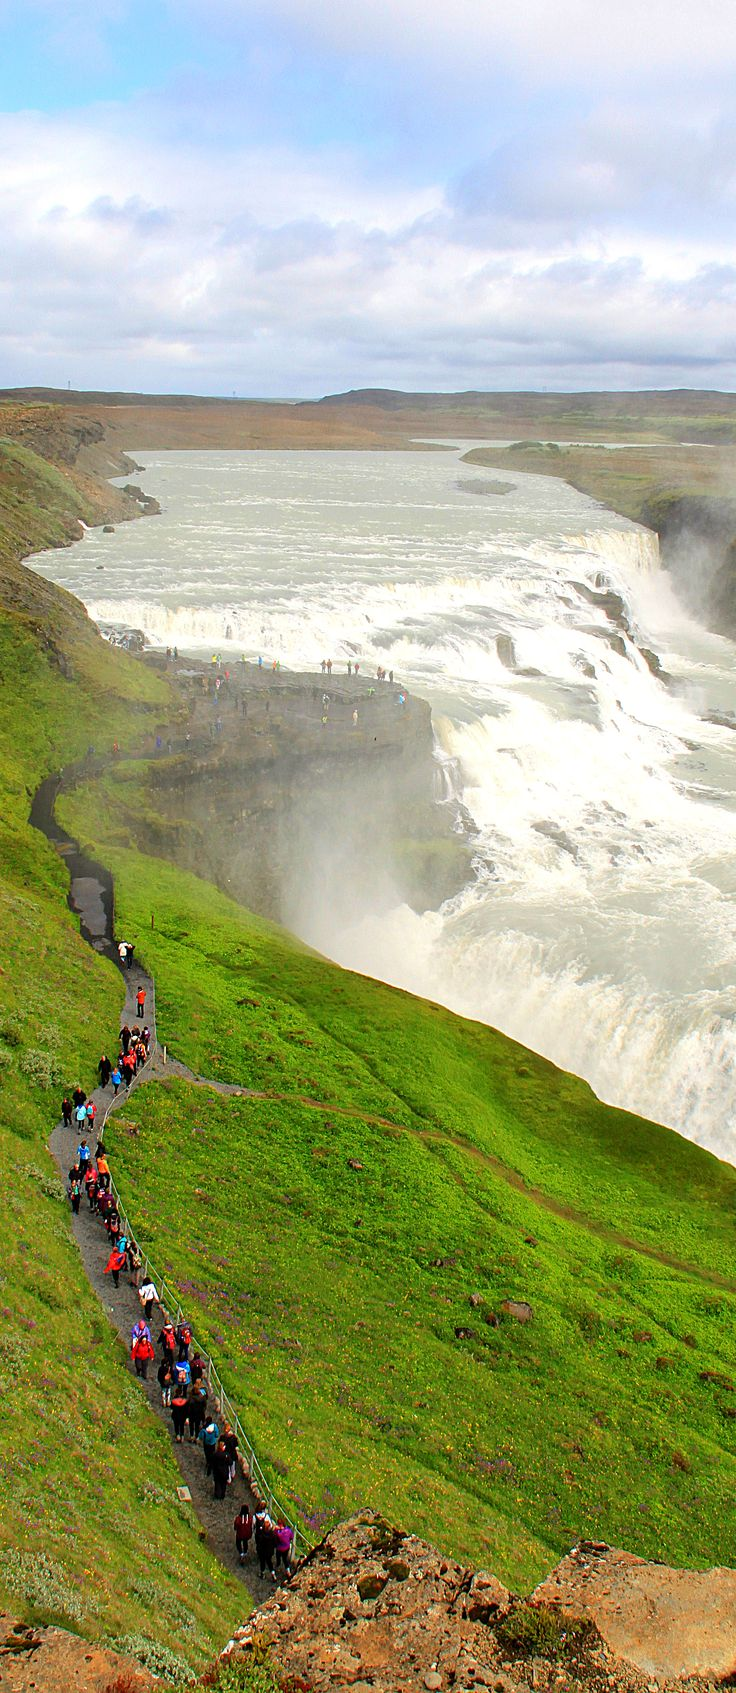 Waterfall Gullfoss, Iceland. | by Inselaffle on Flickr